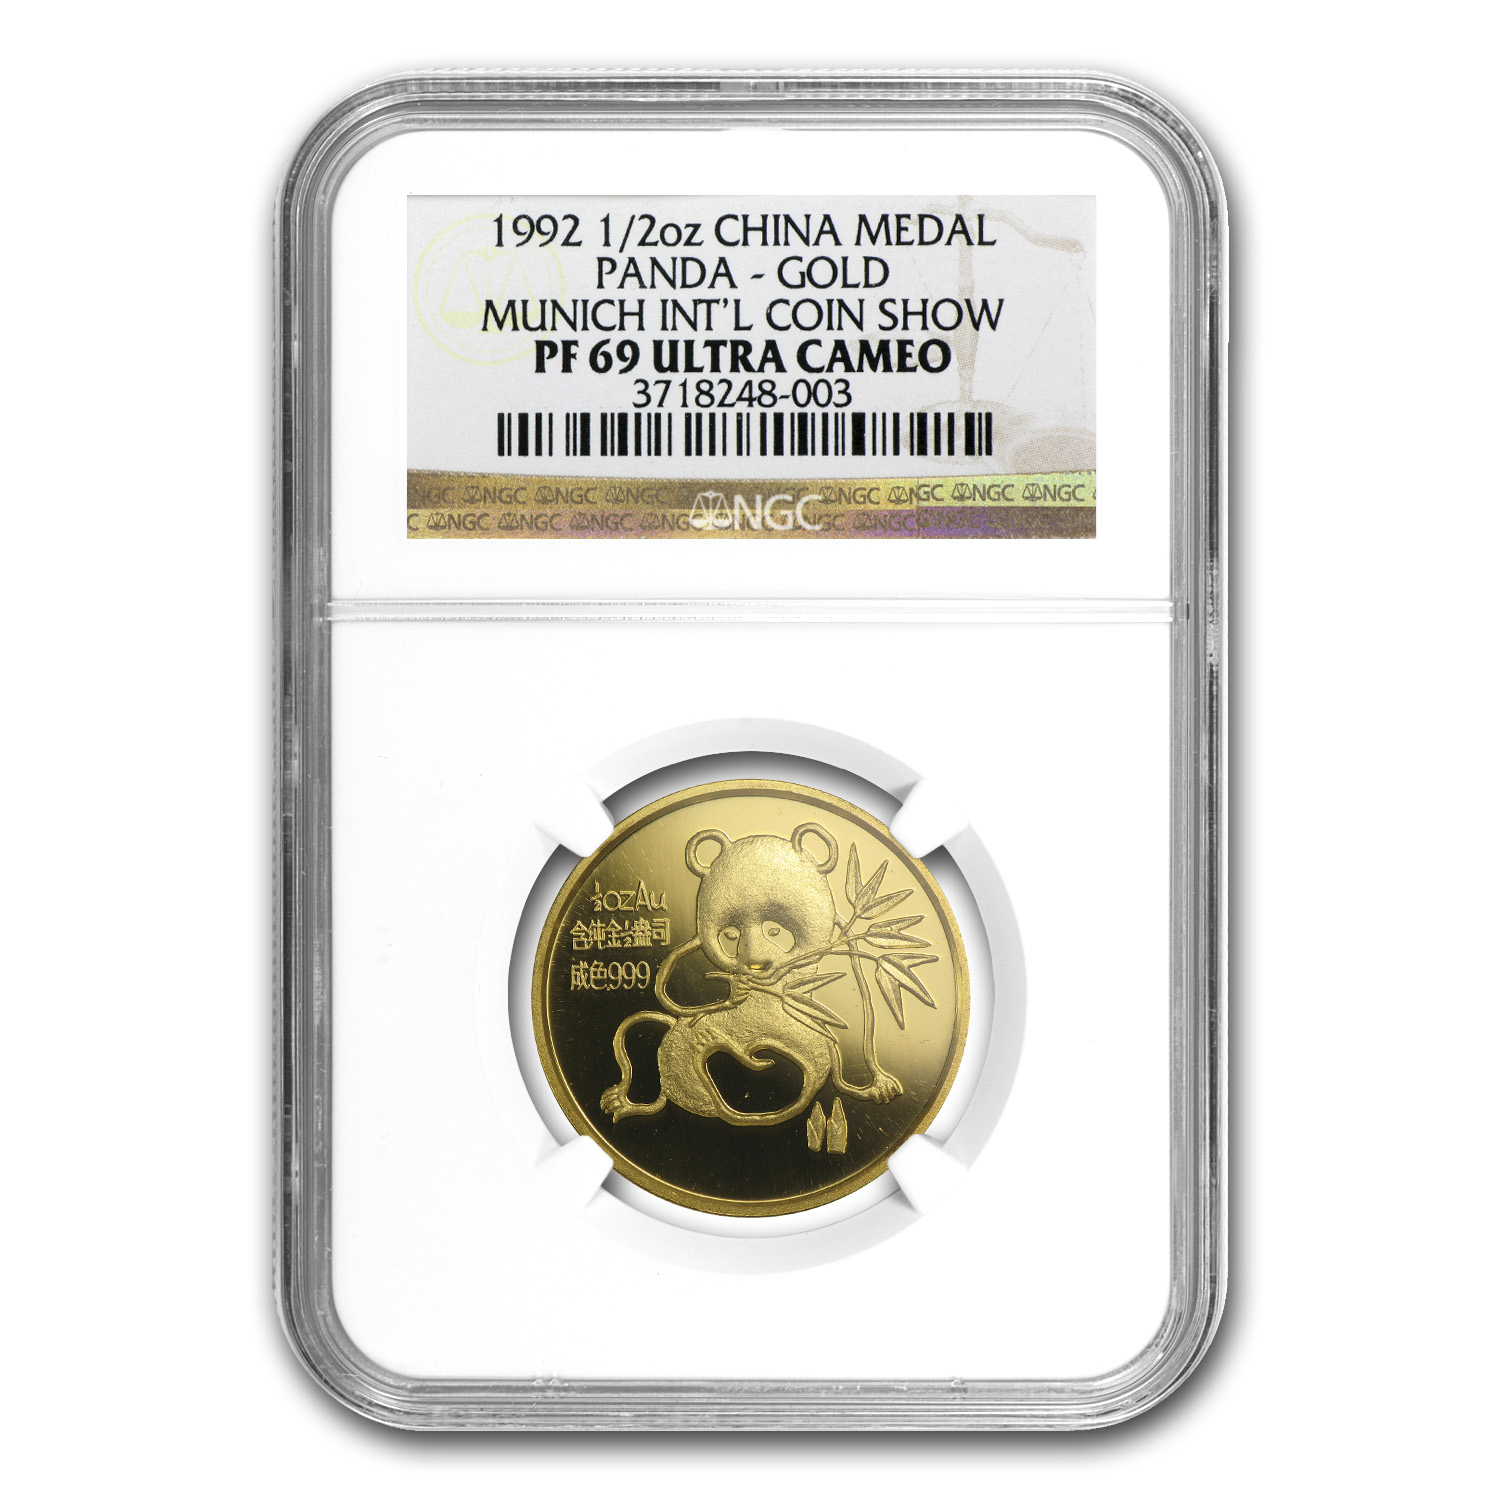 1992 China 1/2 oz Gold Panda PF-69 NGC (Munich Coin Fair Medal)